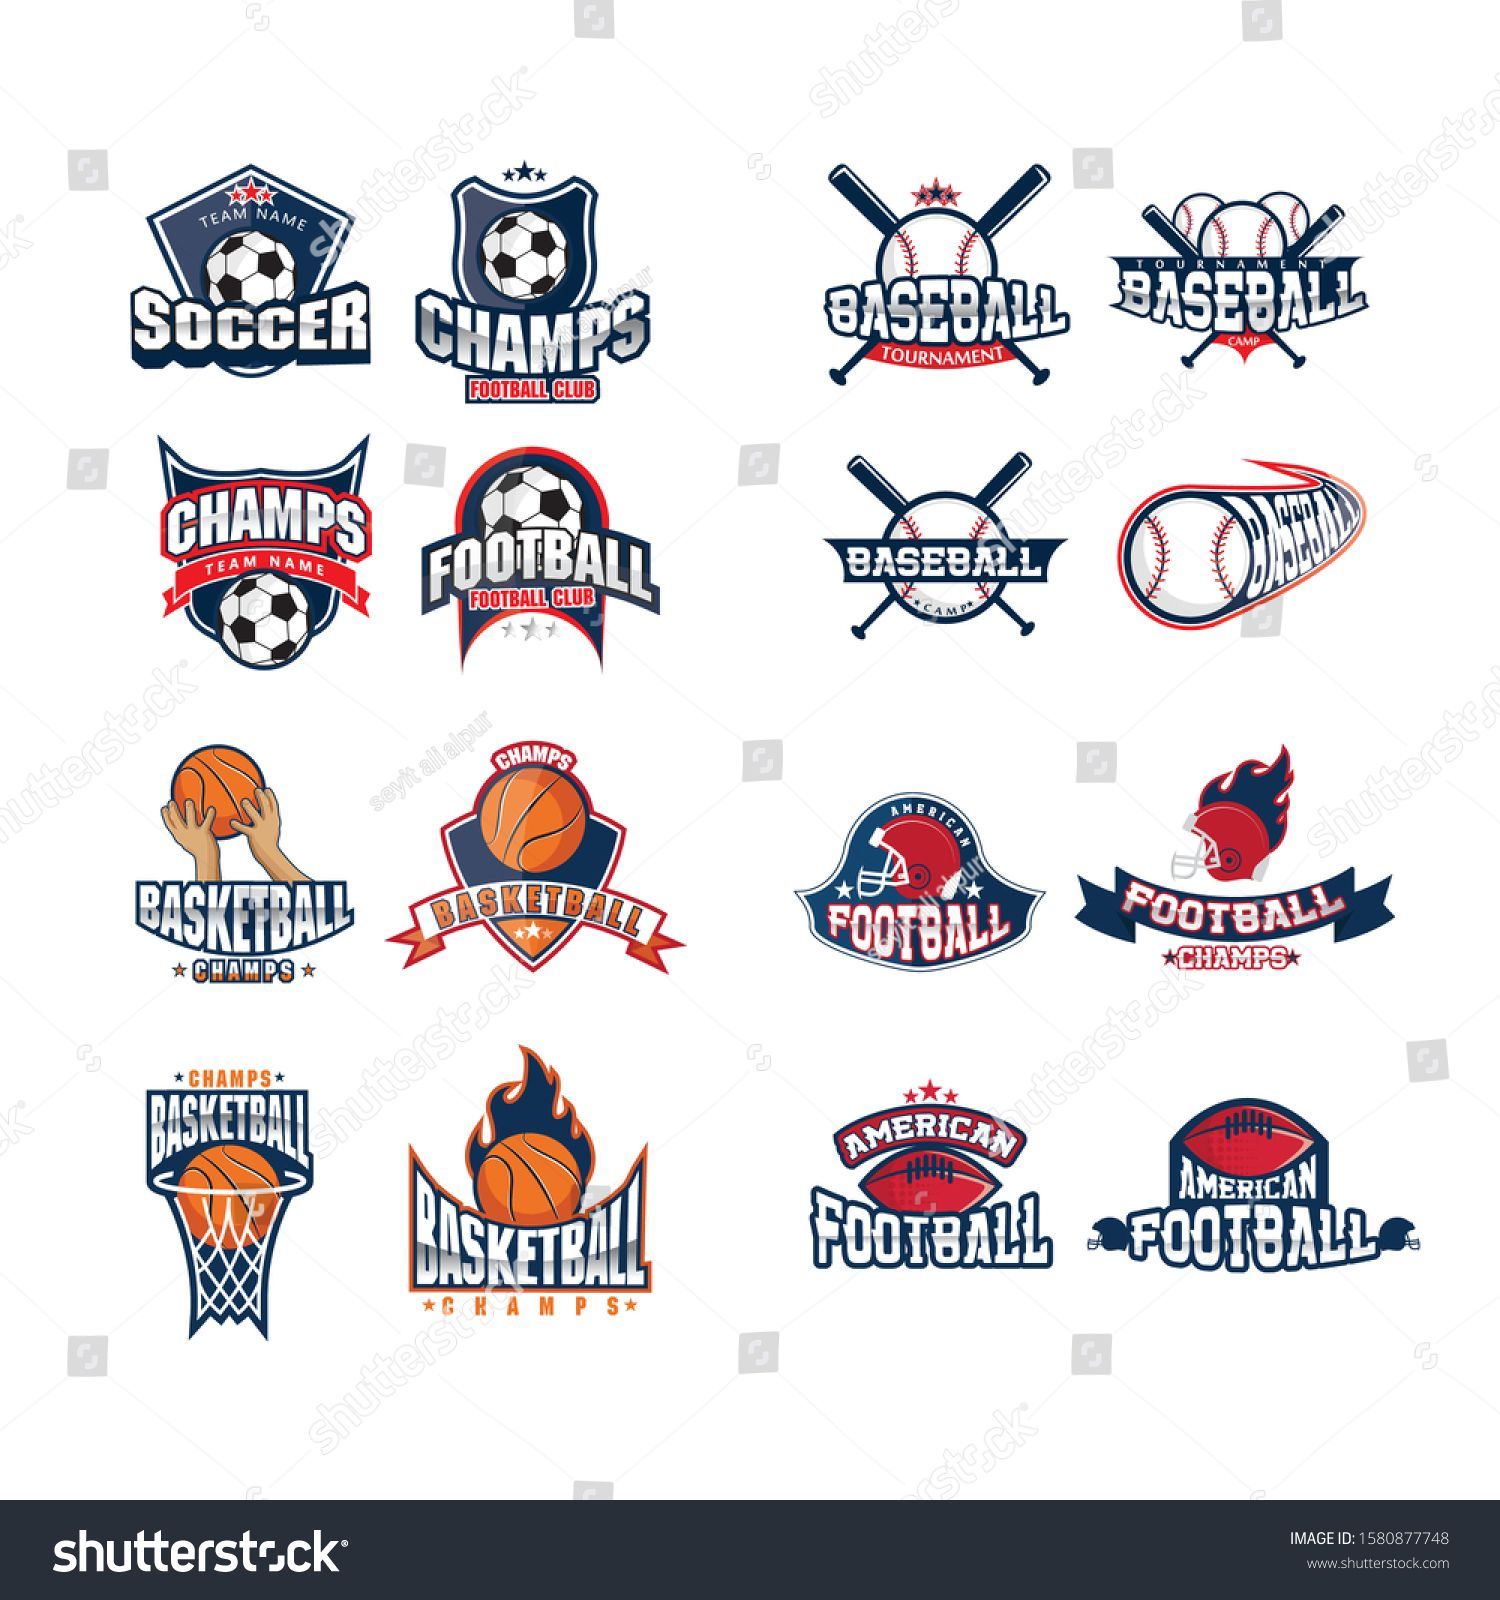 Mega Set Of Colorful Sports Logos Tennis Soccer American Football Volleyball Bowling Rugby Billiards Vector Abstr American Football Sports Logo Football